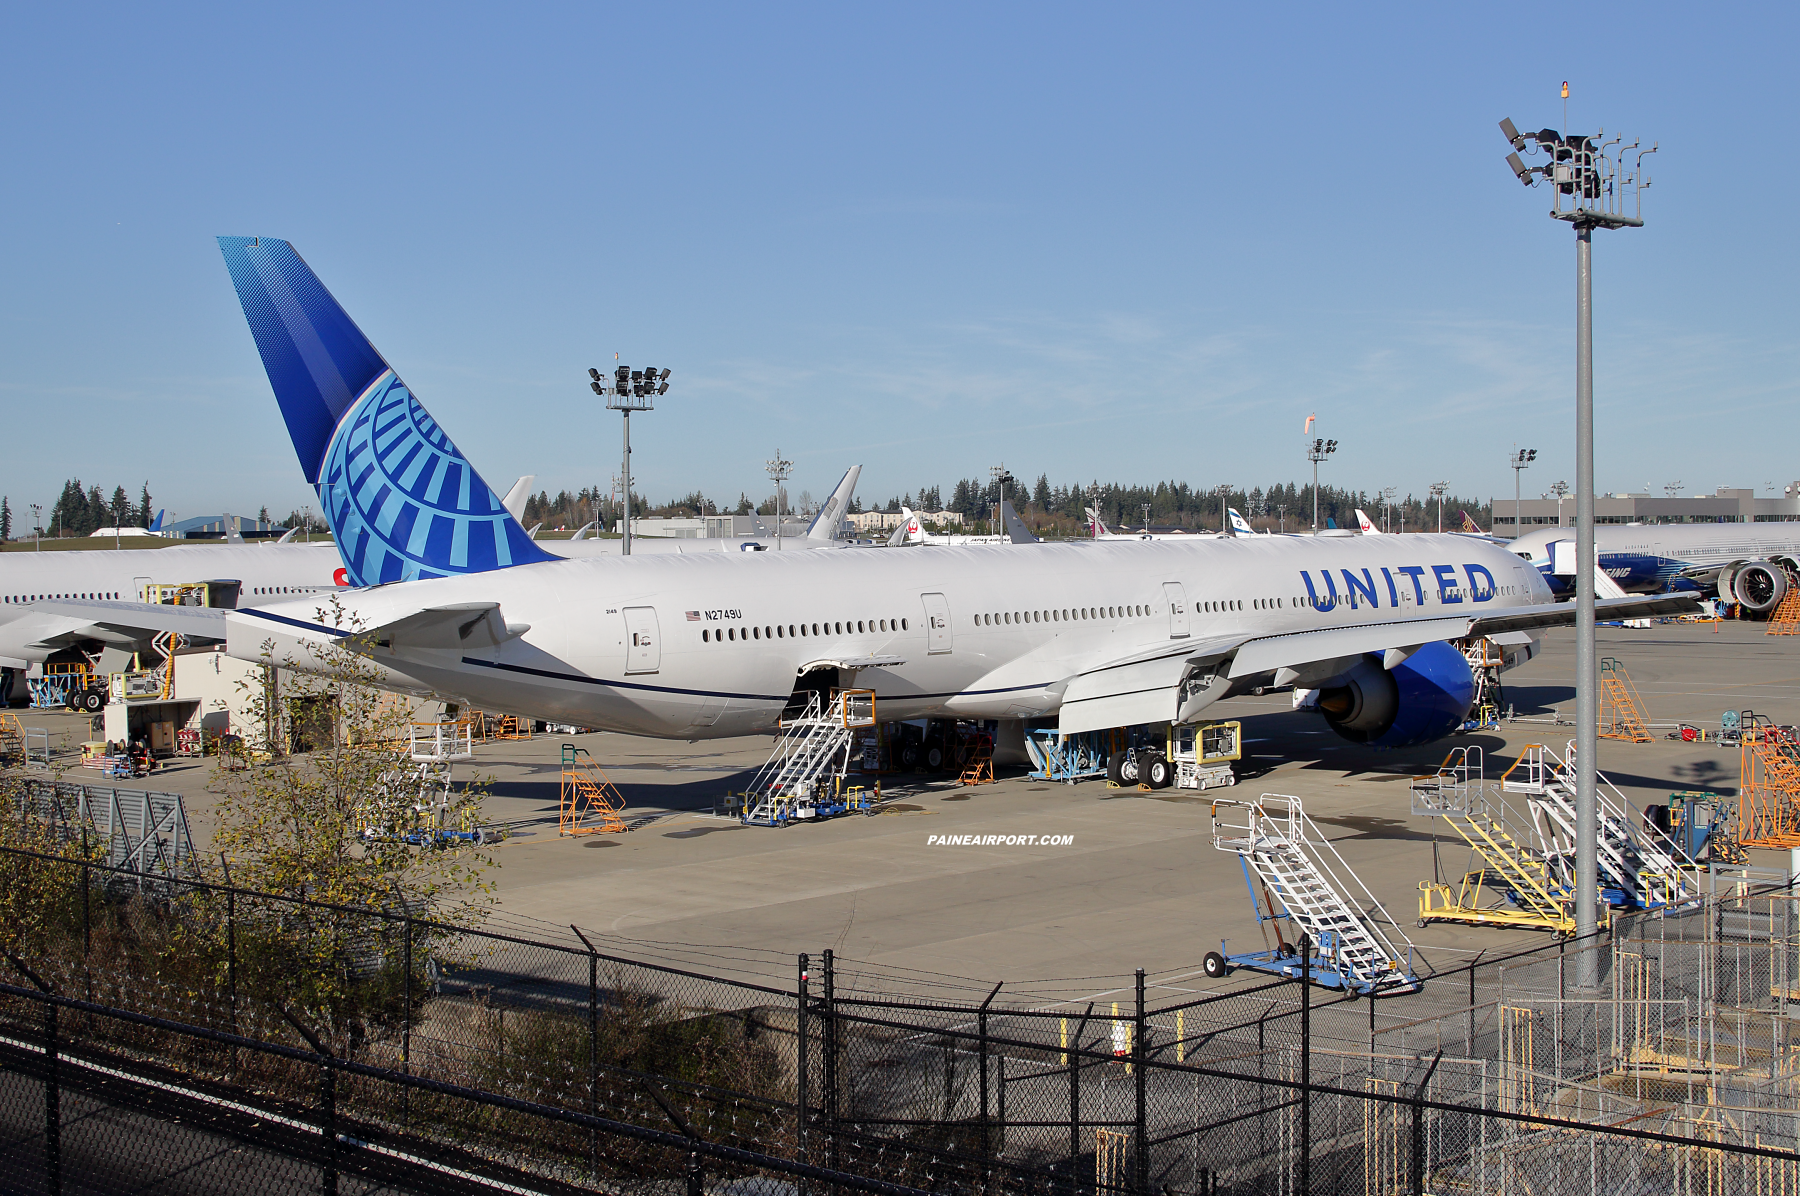 United Airlines 777 N2749U at Paine Field